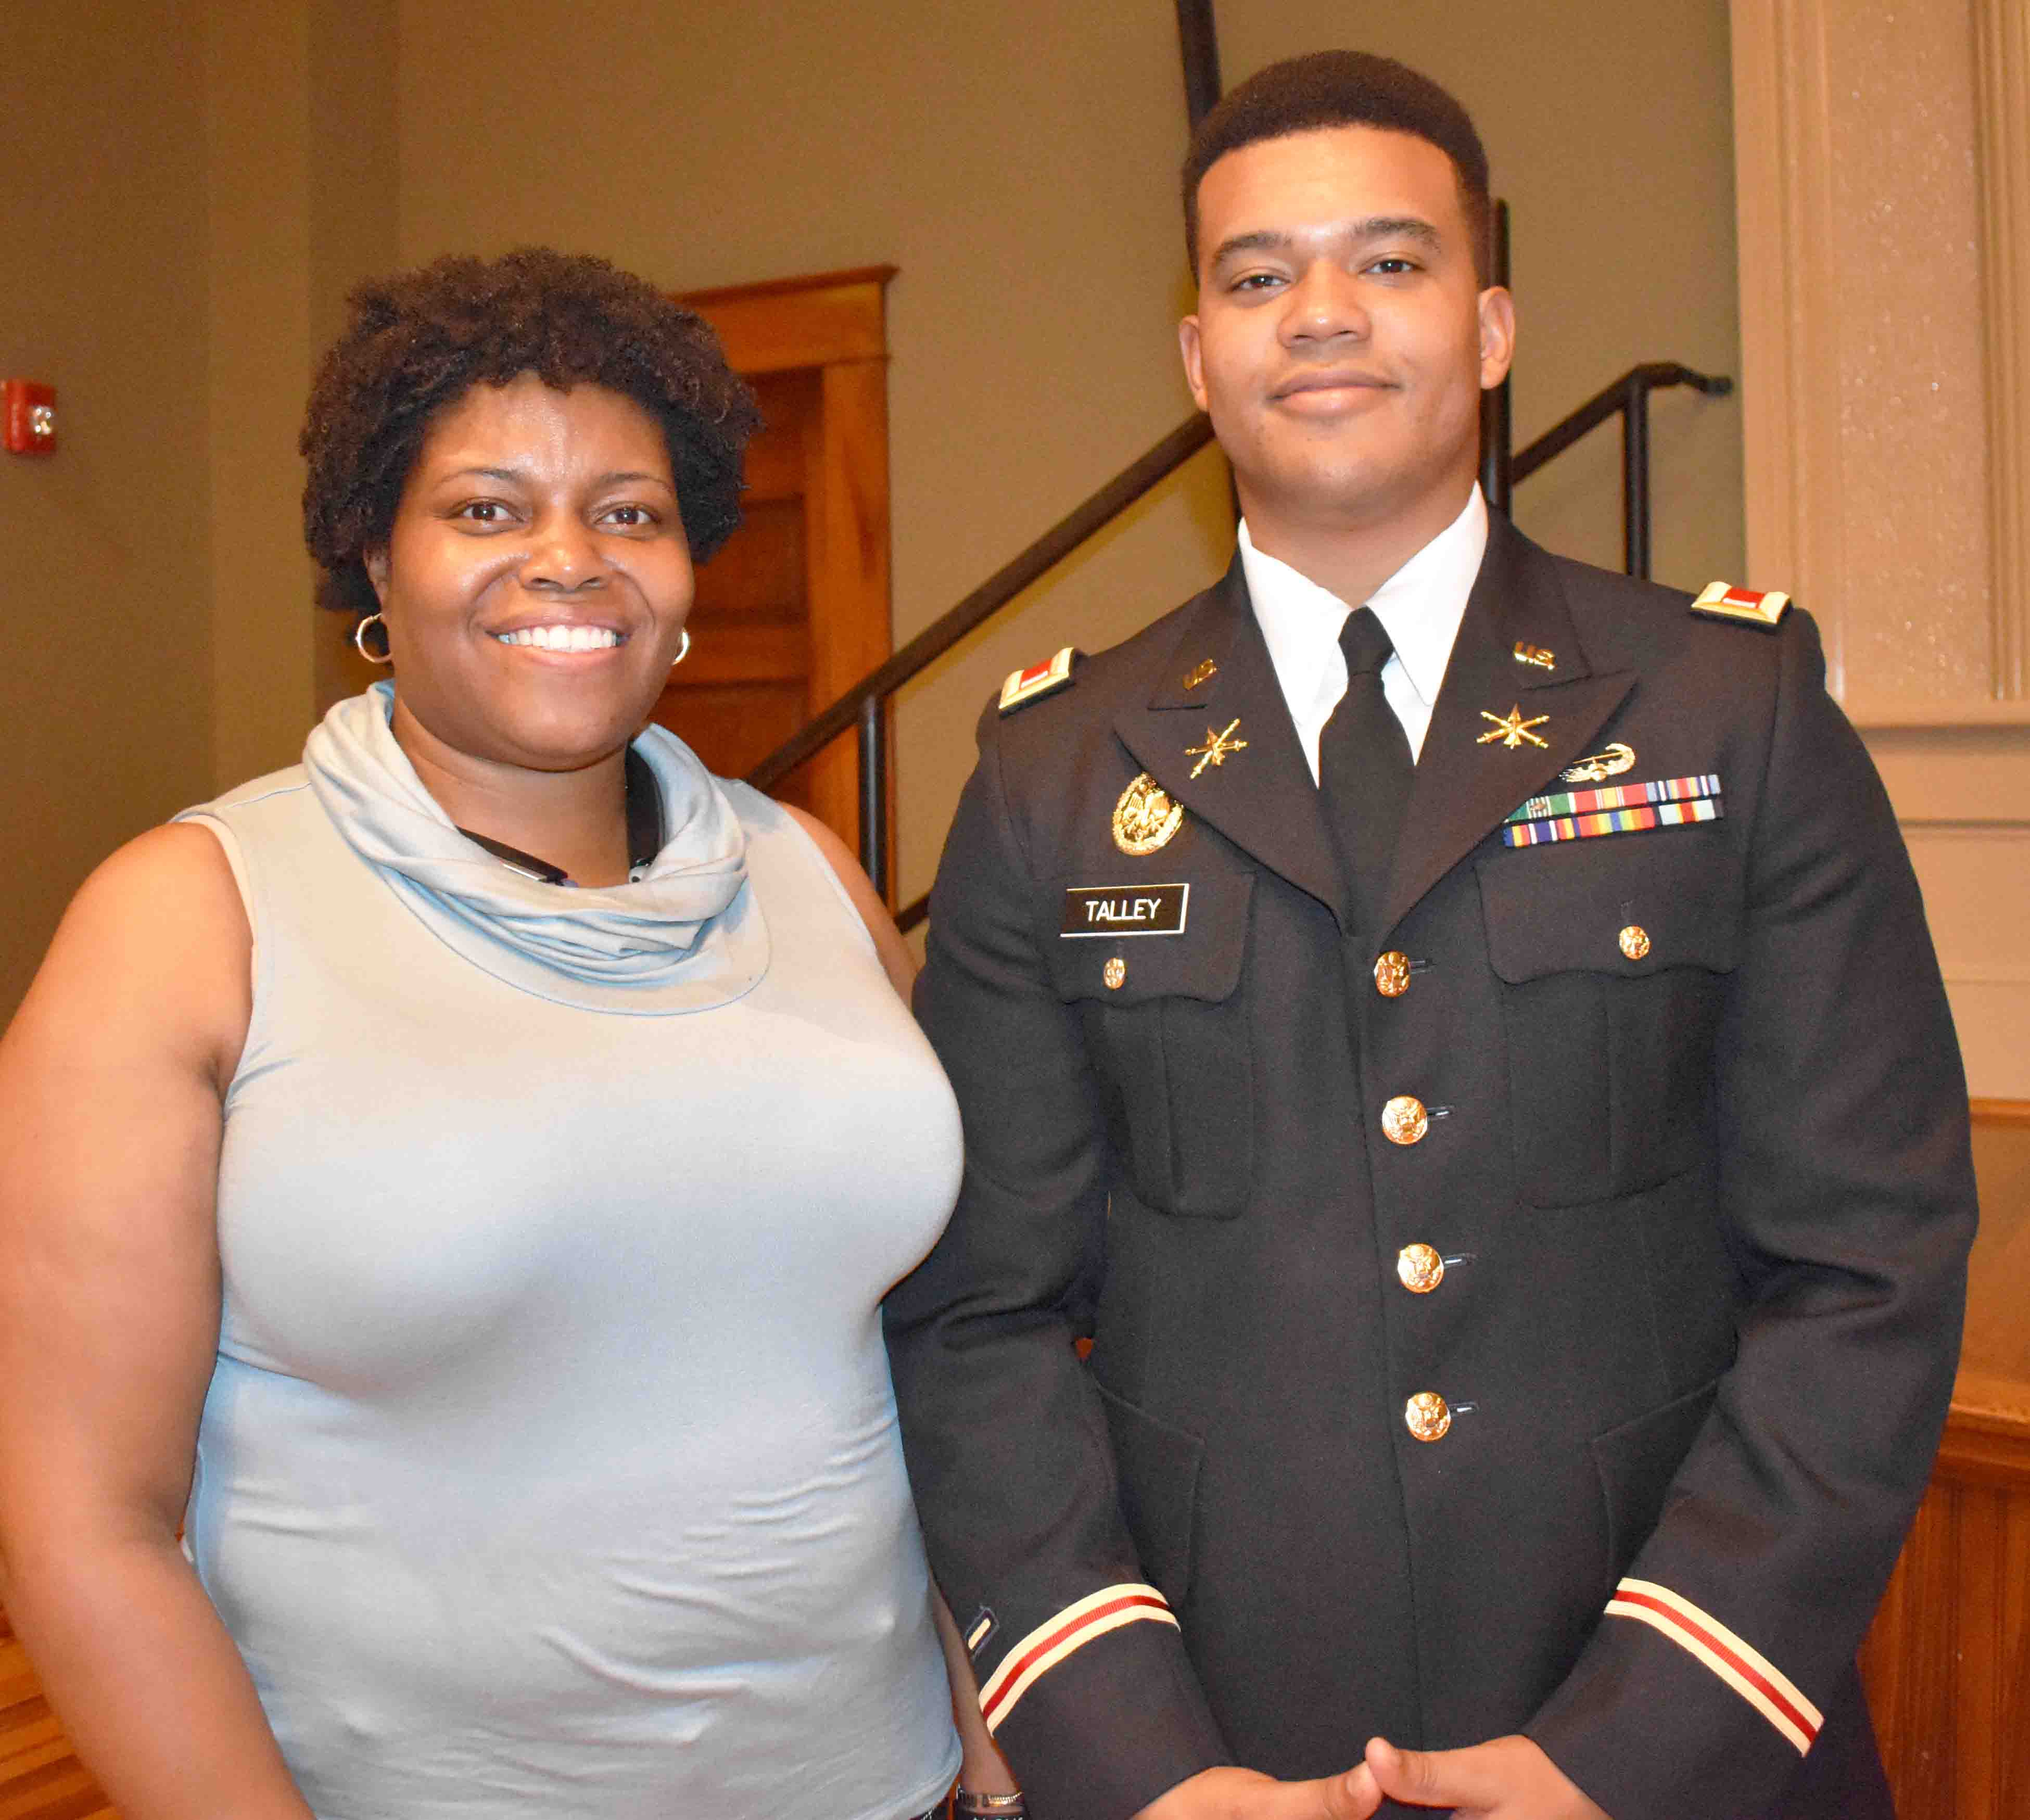 Kimberly Young, First Lieutenant Alijah Talley (Diversity Outreach Officer, West Point Military Academy)